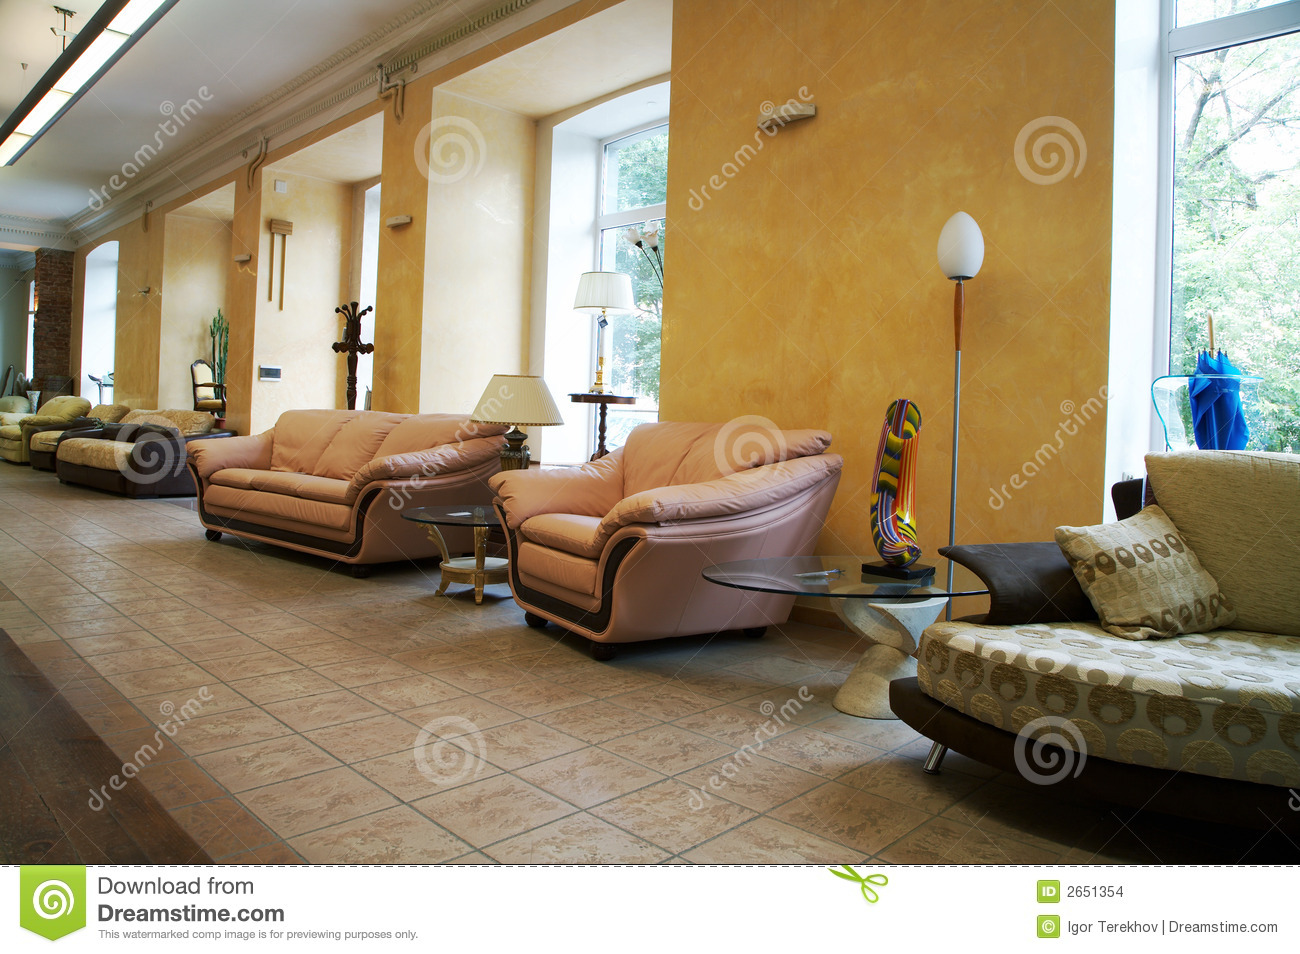 Furniture Store Stock Images Image 2651354